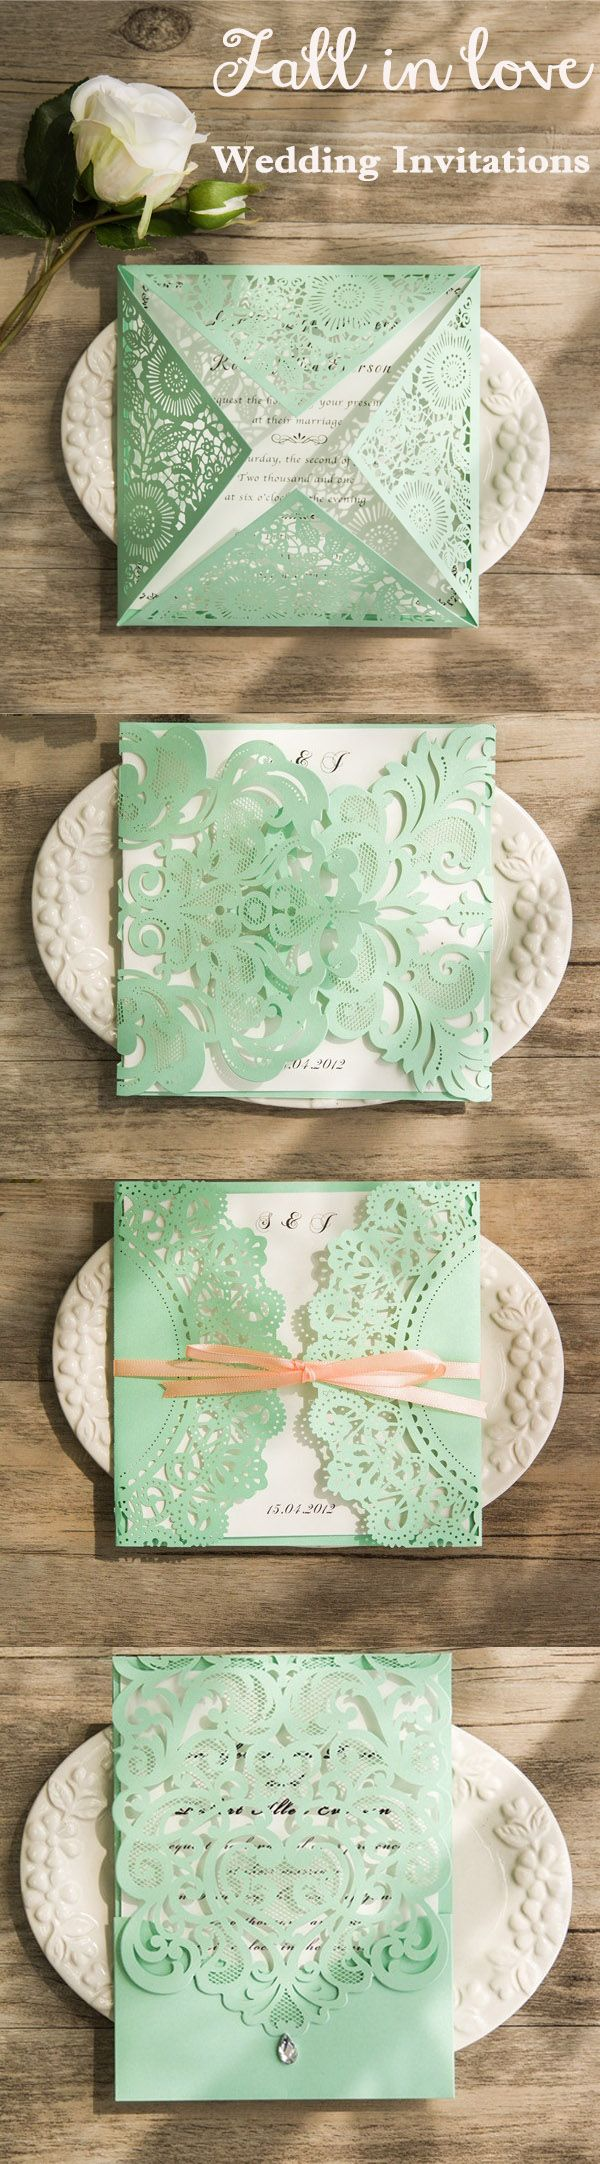 Mint green is a very in color for everything including wedding planning, which is fresh, lovely, brisk and can be a bonus to wedding color palette. Do you like these mint green laser cut wedding invitations?